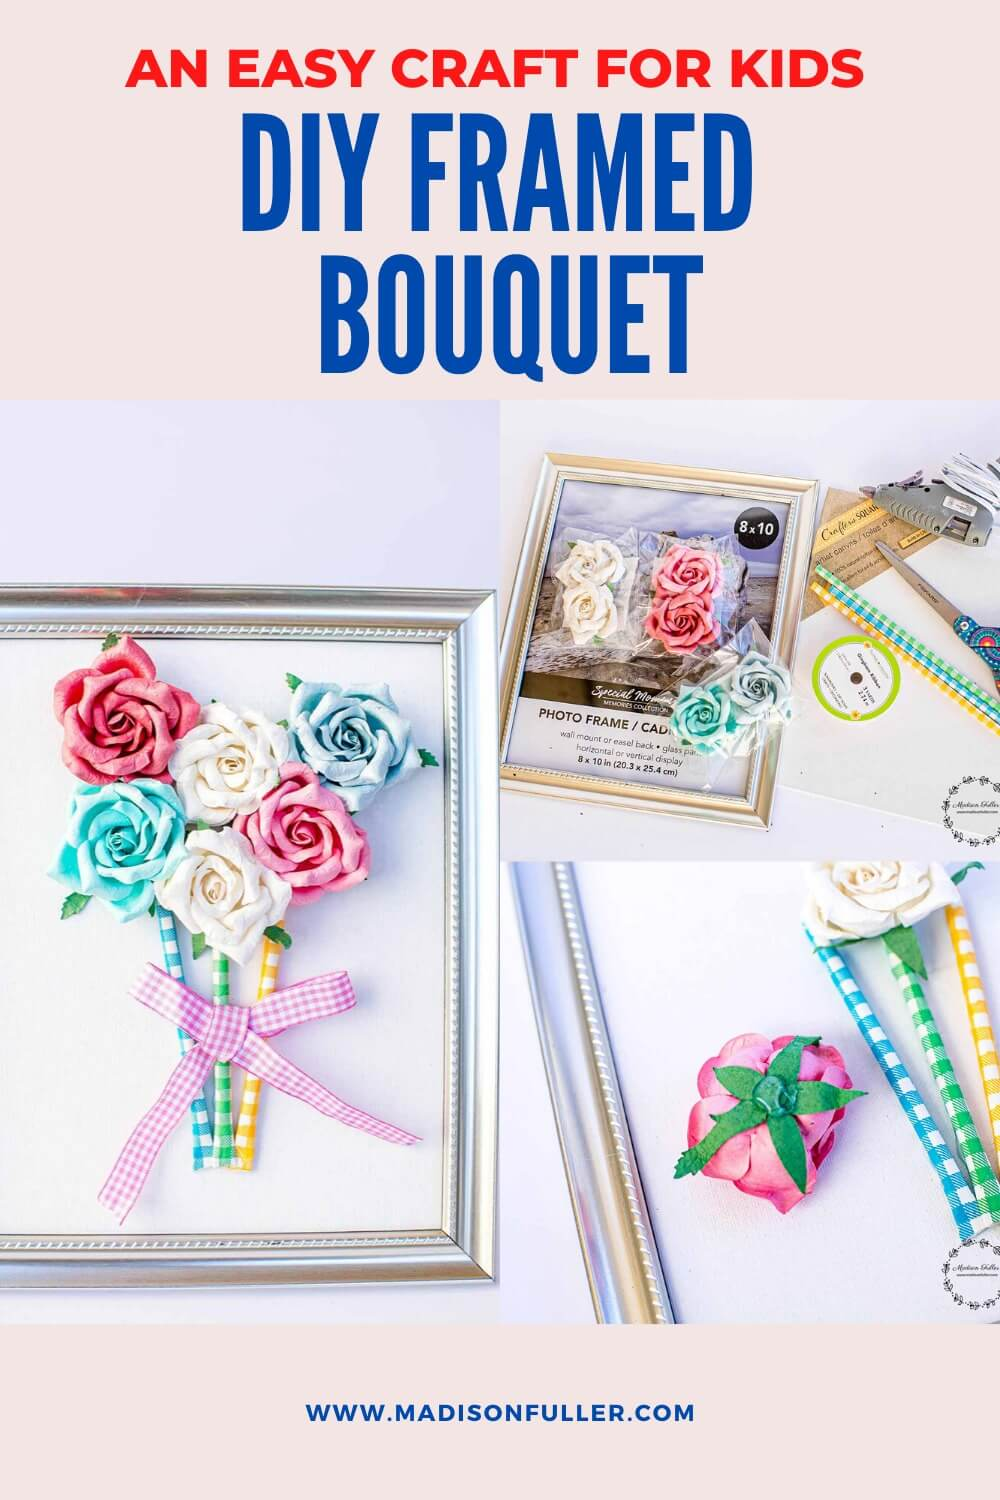 An Easy Craft for Kids - DIY Framed Bouquet